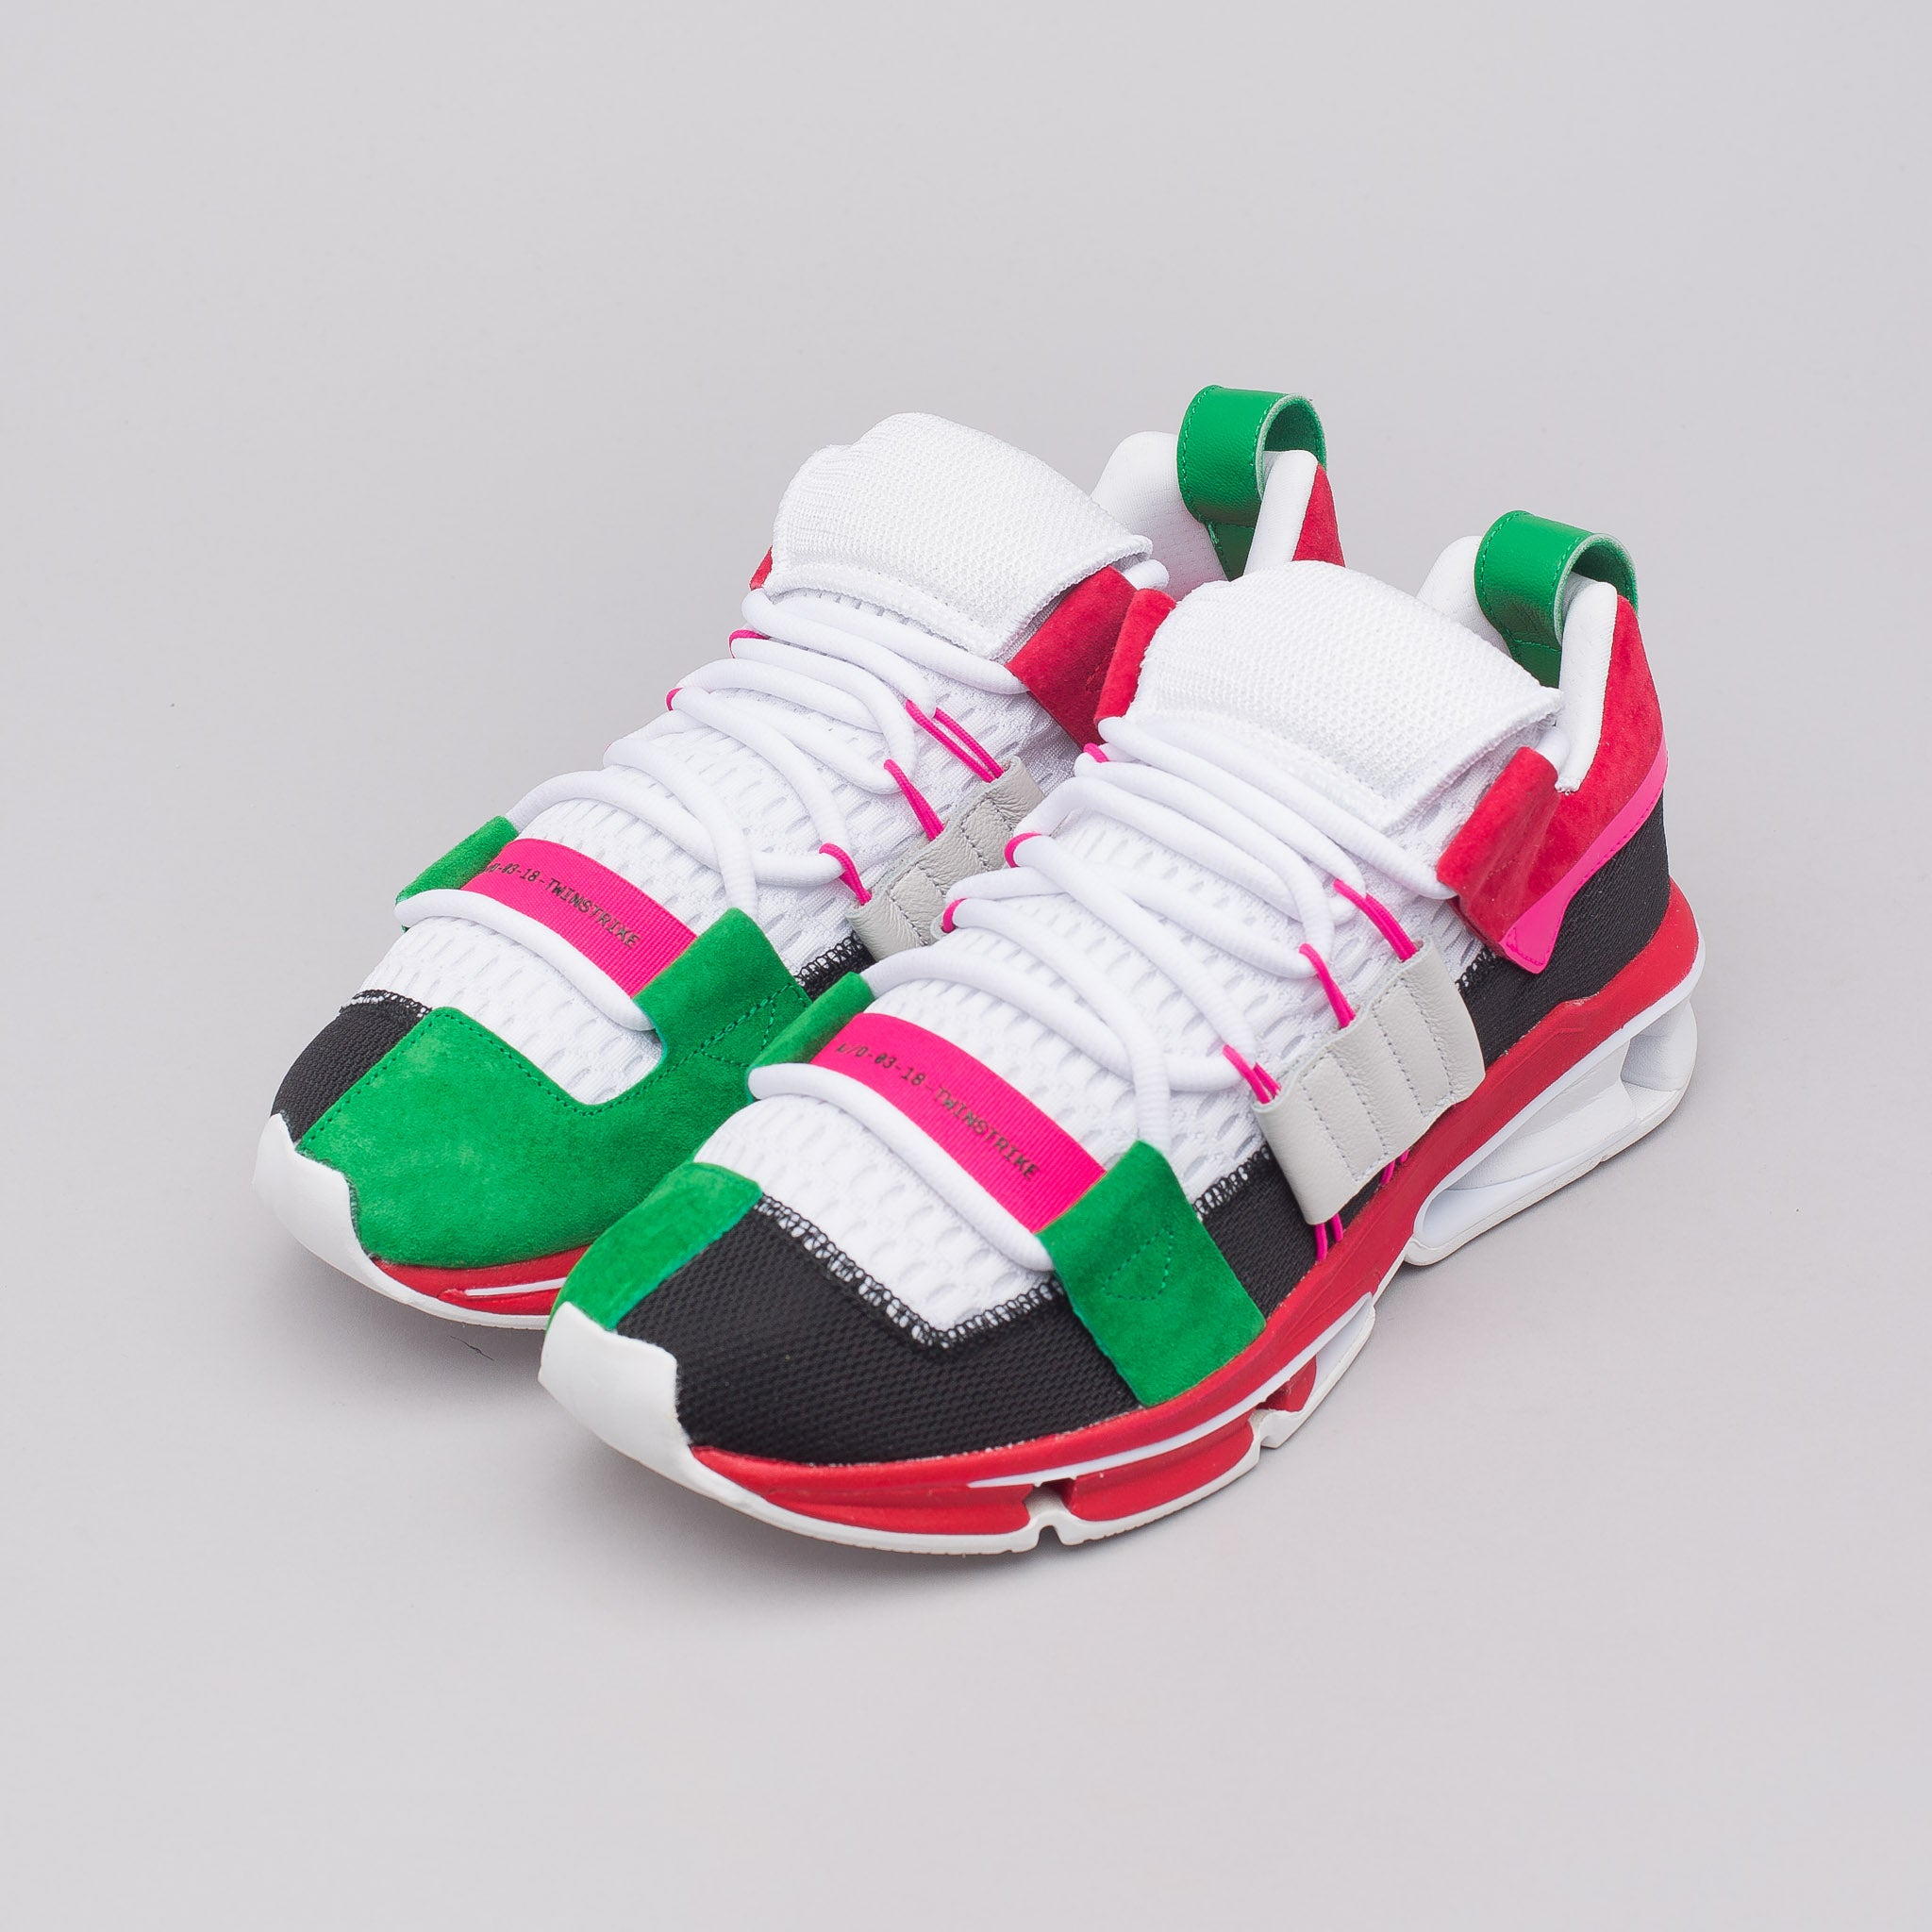 Black Twinstrike ADV Sneakers adidas Originals Cheap Sale Countdown Package Deals For Sale Buy Cheap Inexpensive Nicekicks For Sale r4qHpCIO